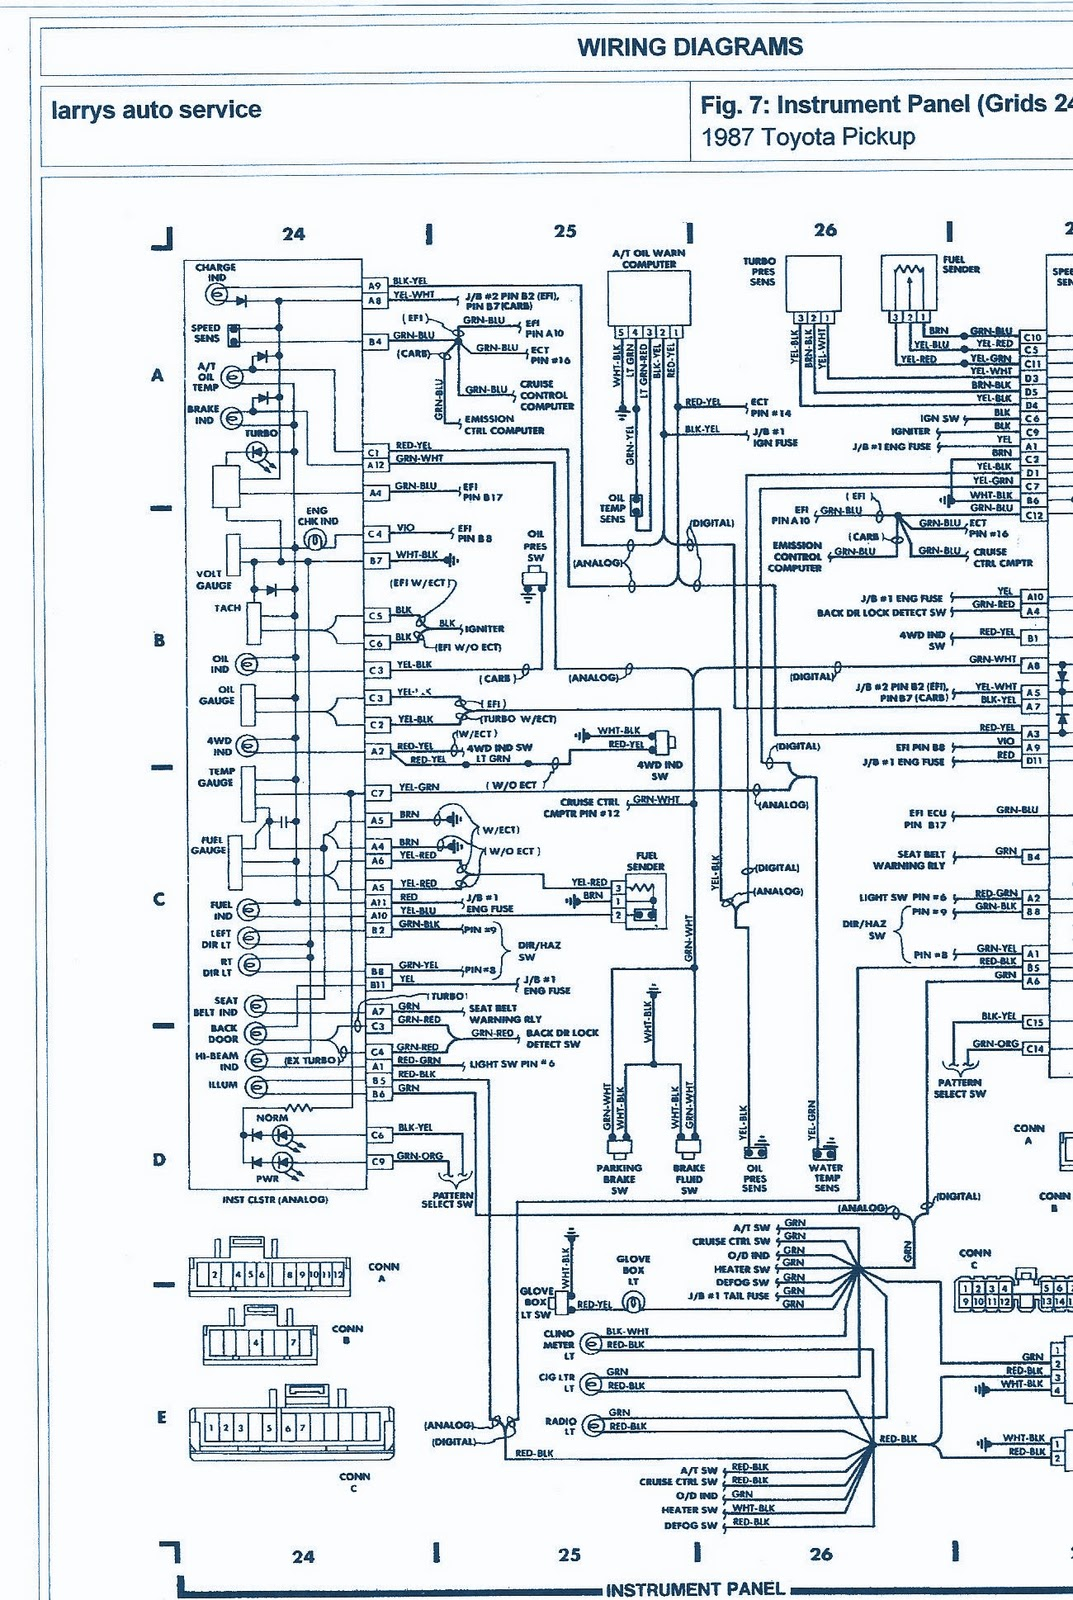 Diagram 1983 Toyota Pickup Wiring Diagram Full Version Hd Quality Wiring Diagram Cluster Diagrams Lrpol Fr